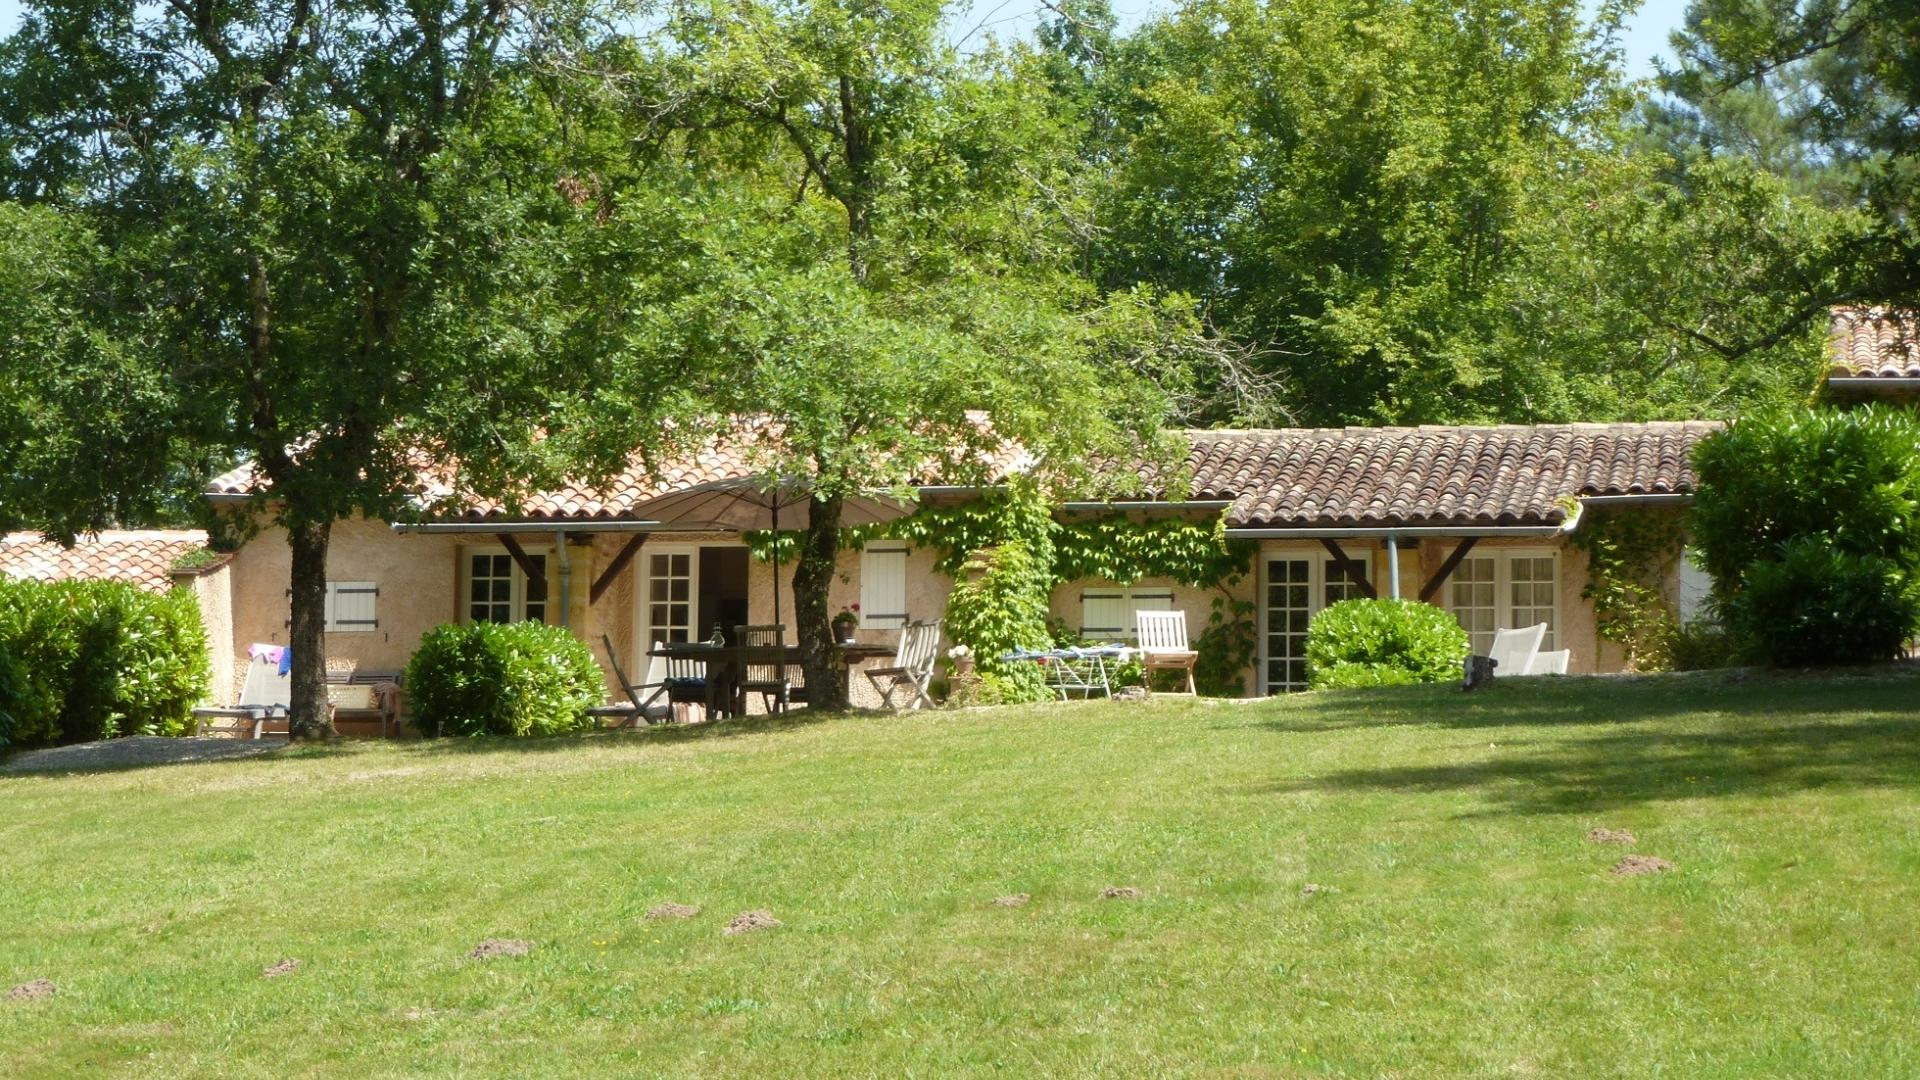 4 Bedroom Cottage/shared facilities in Midi-Pyrenees, France